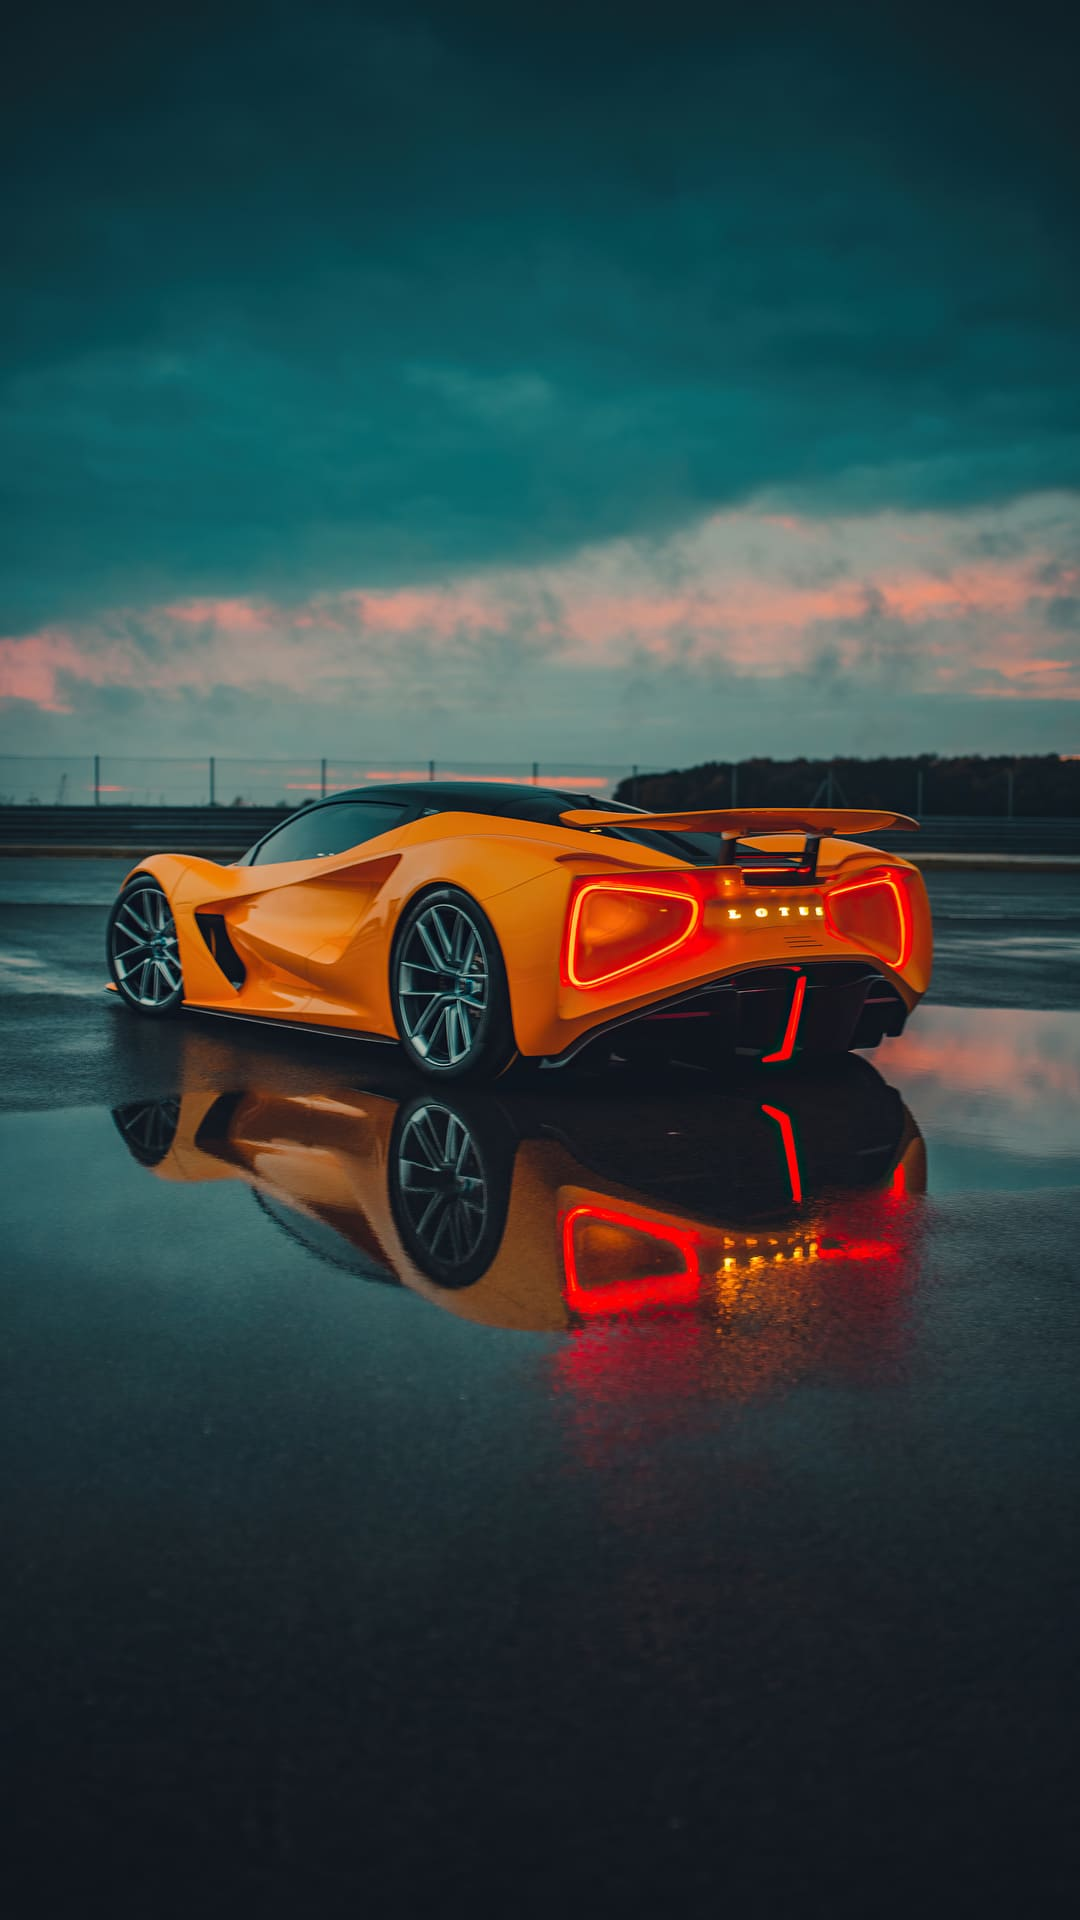 Images have the power to move your emotions like few things in life. Cool Cars Wallpapers Getty Wallpapers